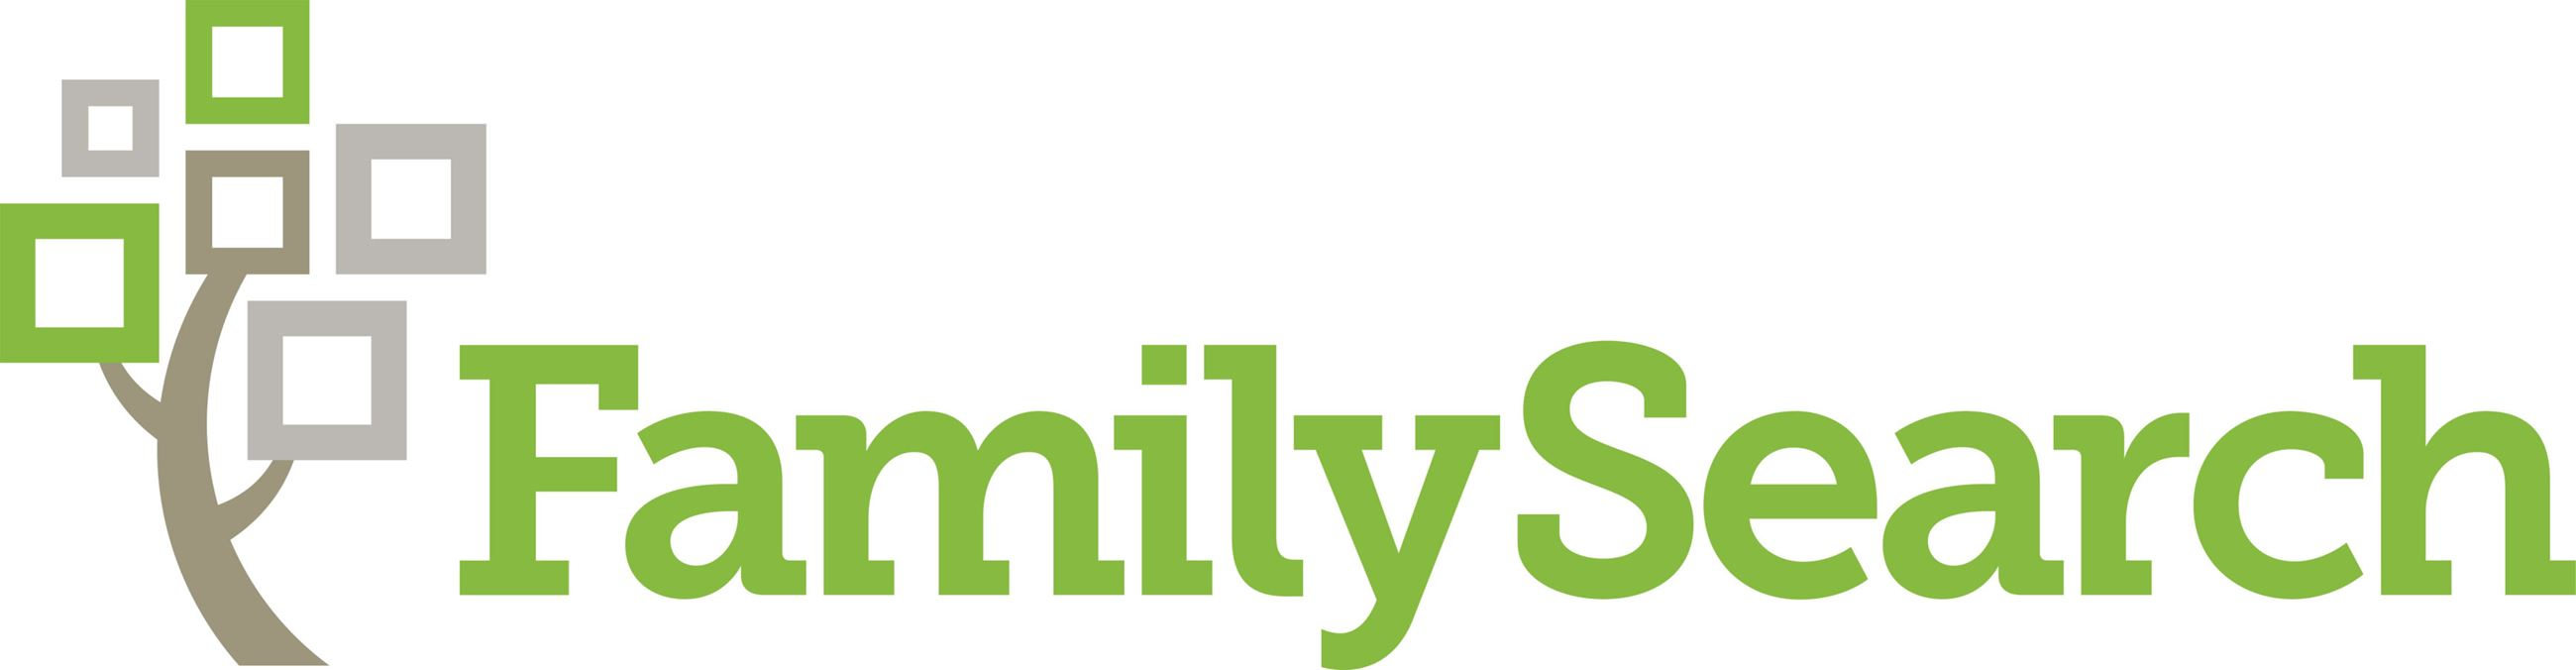 FamilySearchLogo Opens in new window